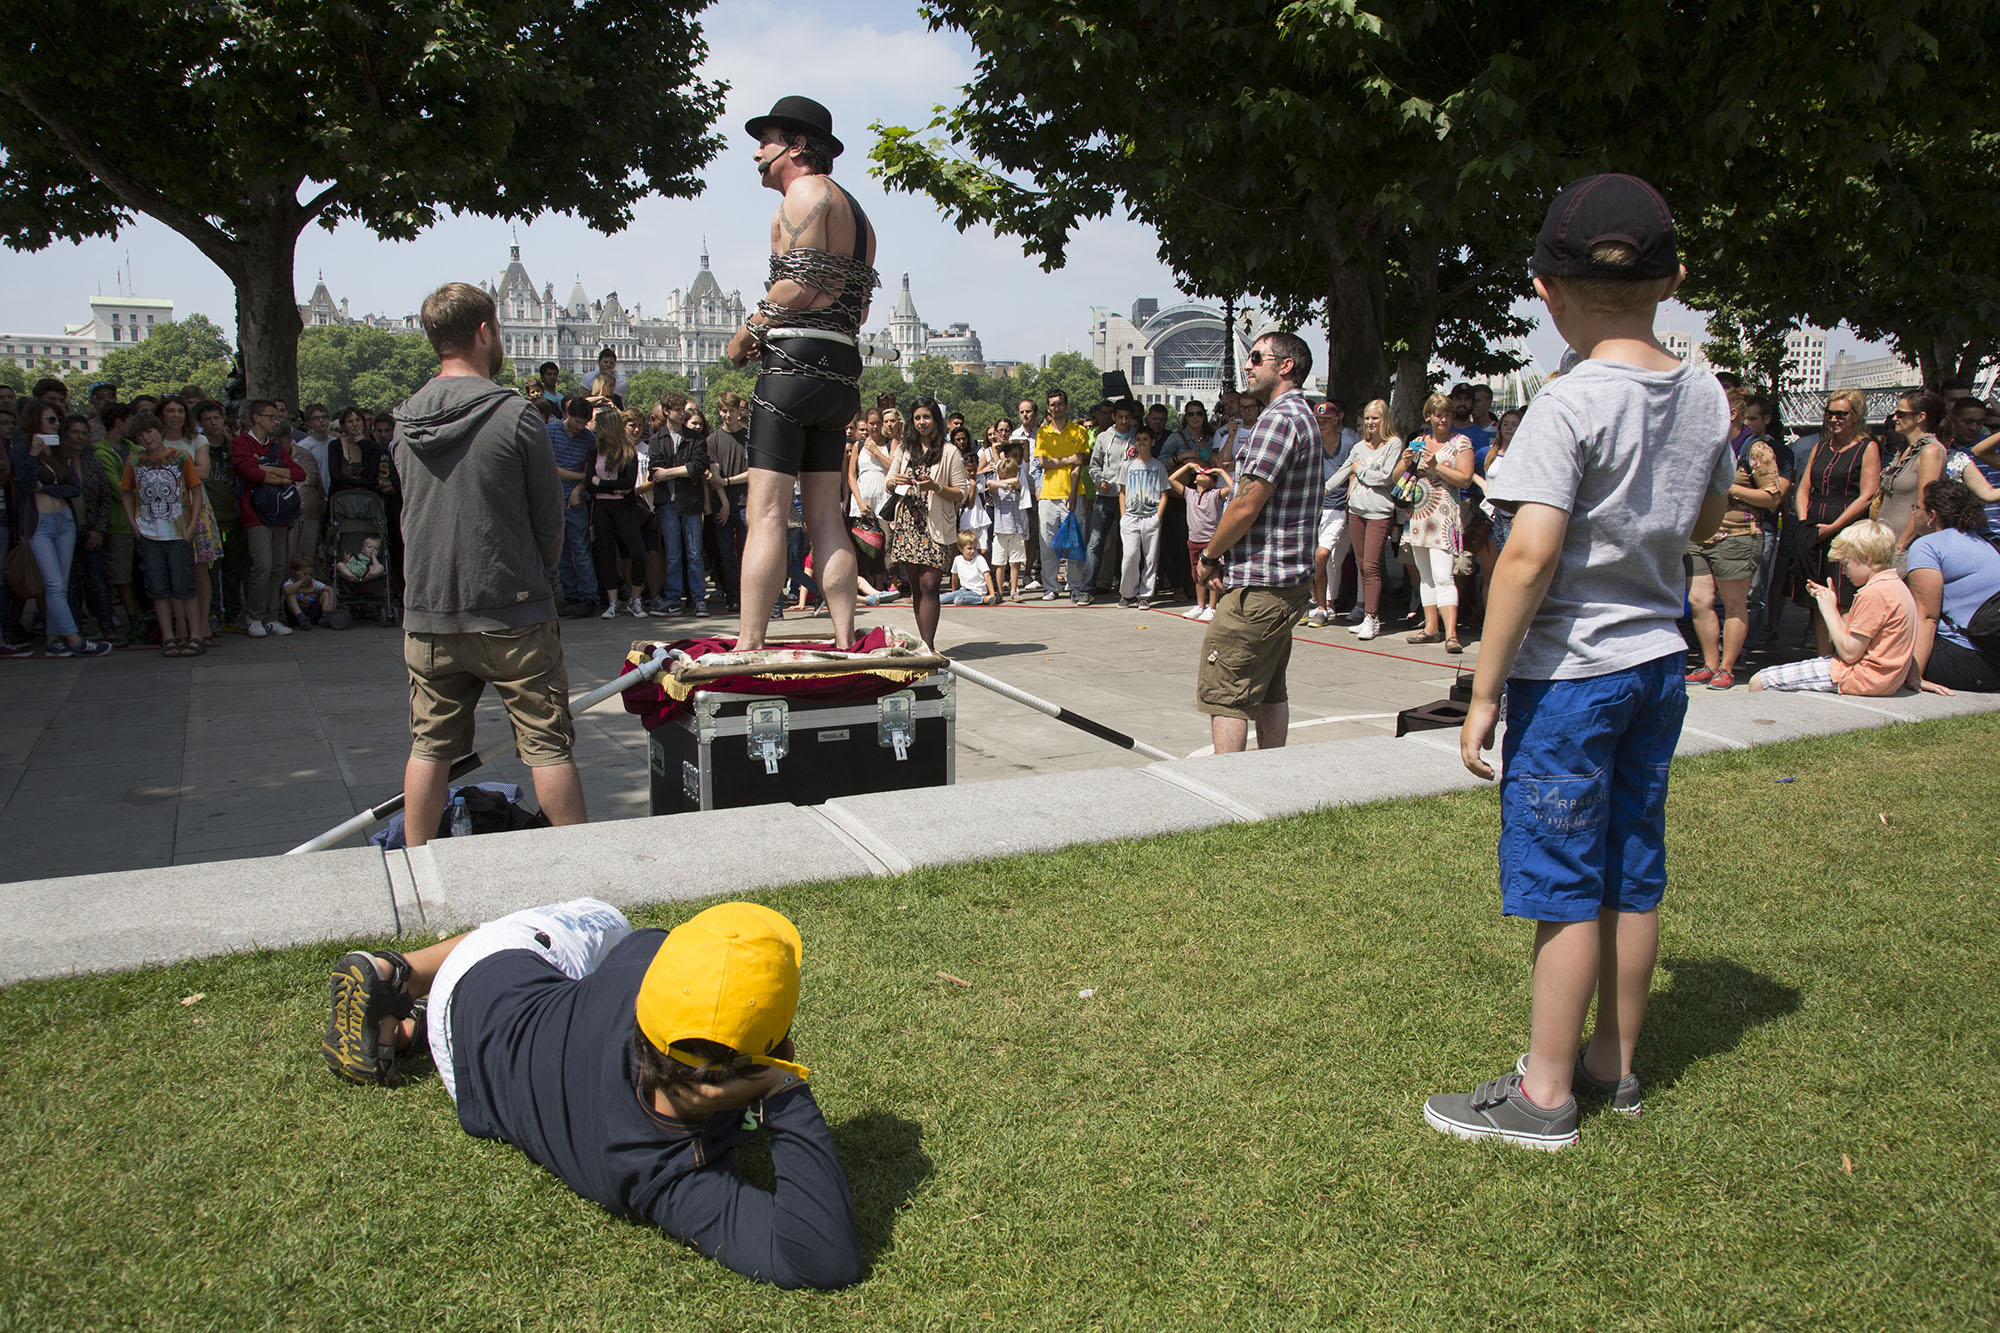 Street performing escapologist Tony Roberts delights crowds with his show on the South Bank walkway.